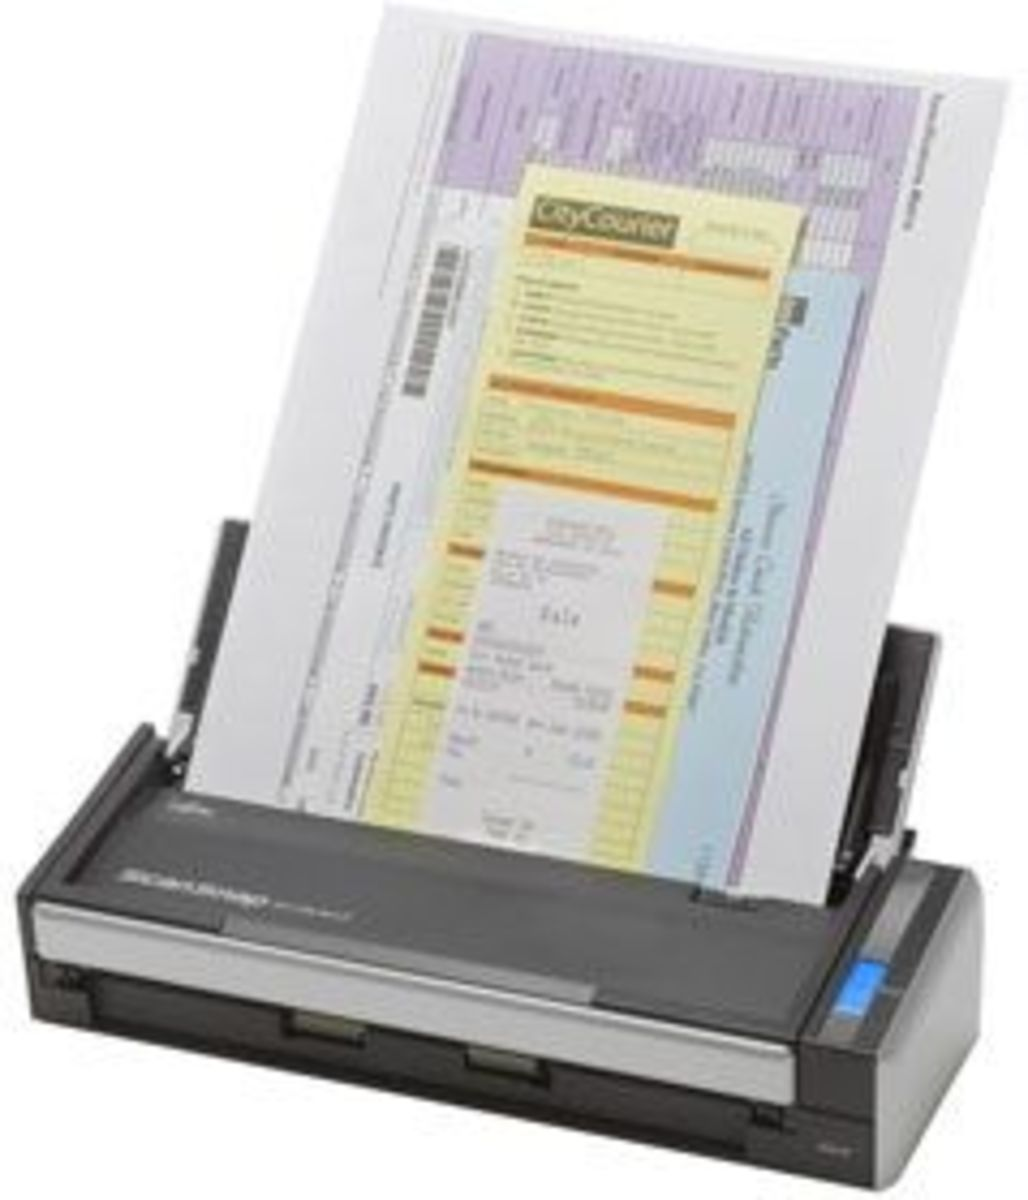 Fujitsu ScanSnap S1300 Mobile Printer Scanner Review